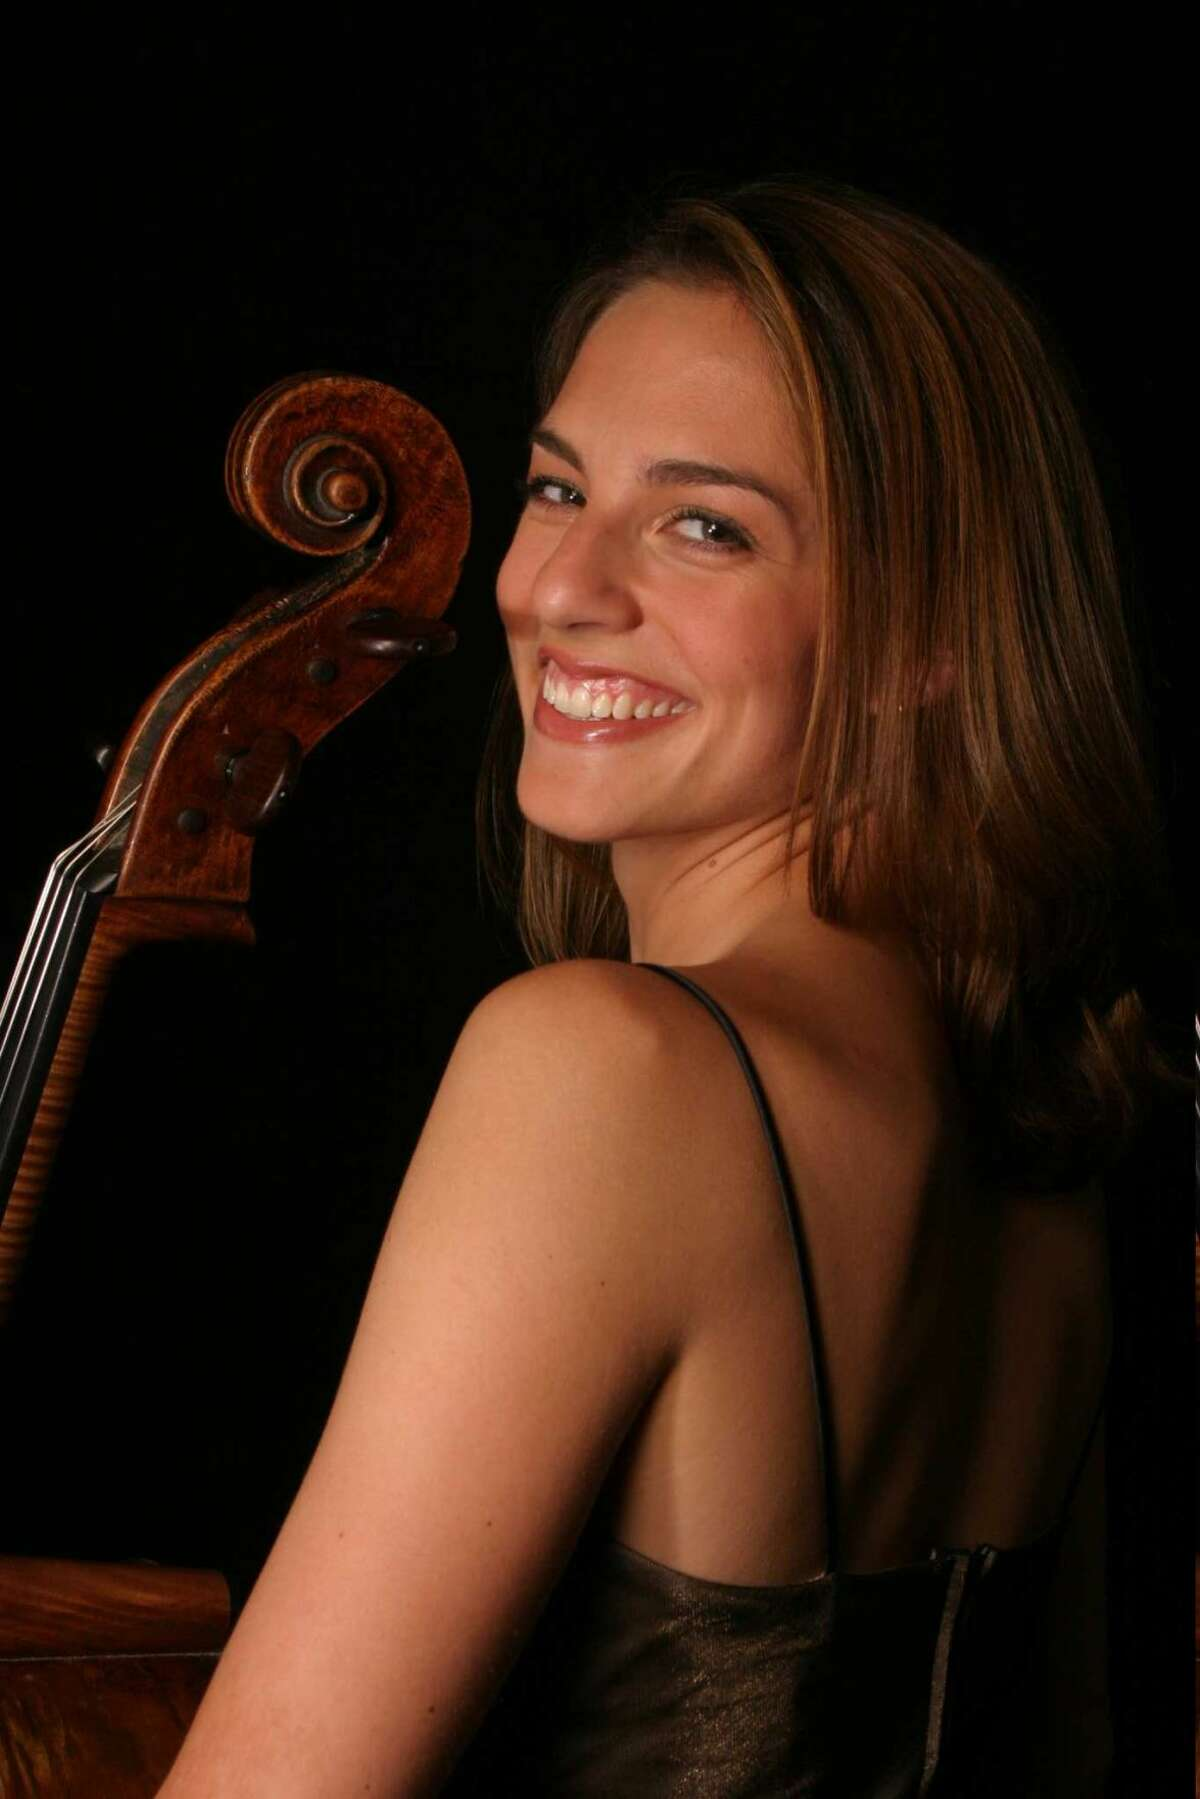 Cellist Julie Albers performs with the Stamford Symphony Saturday and Sunday at the Palace Theatre in Stamford. Find out more. (Credit: Contributed Photo)